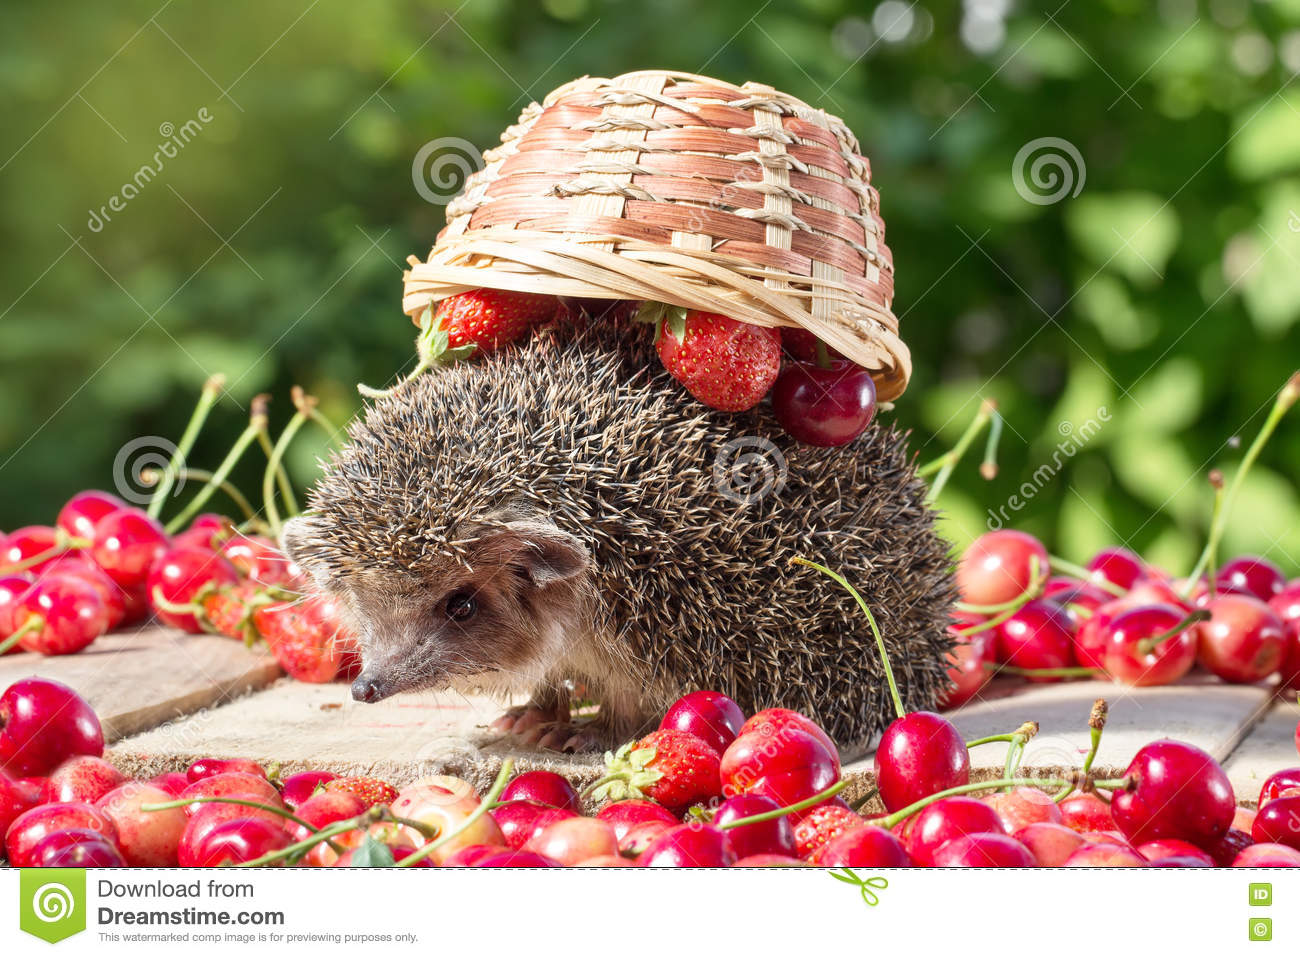 Cute young hedgehog, Atelerix albiventris, among berries on a background of green leaves